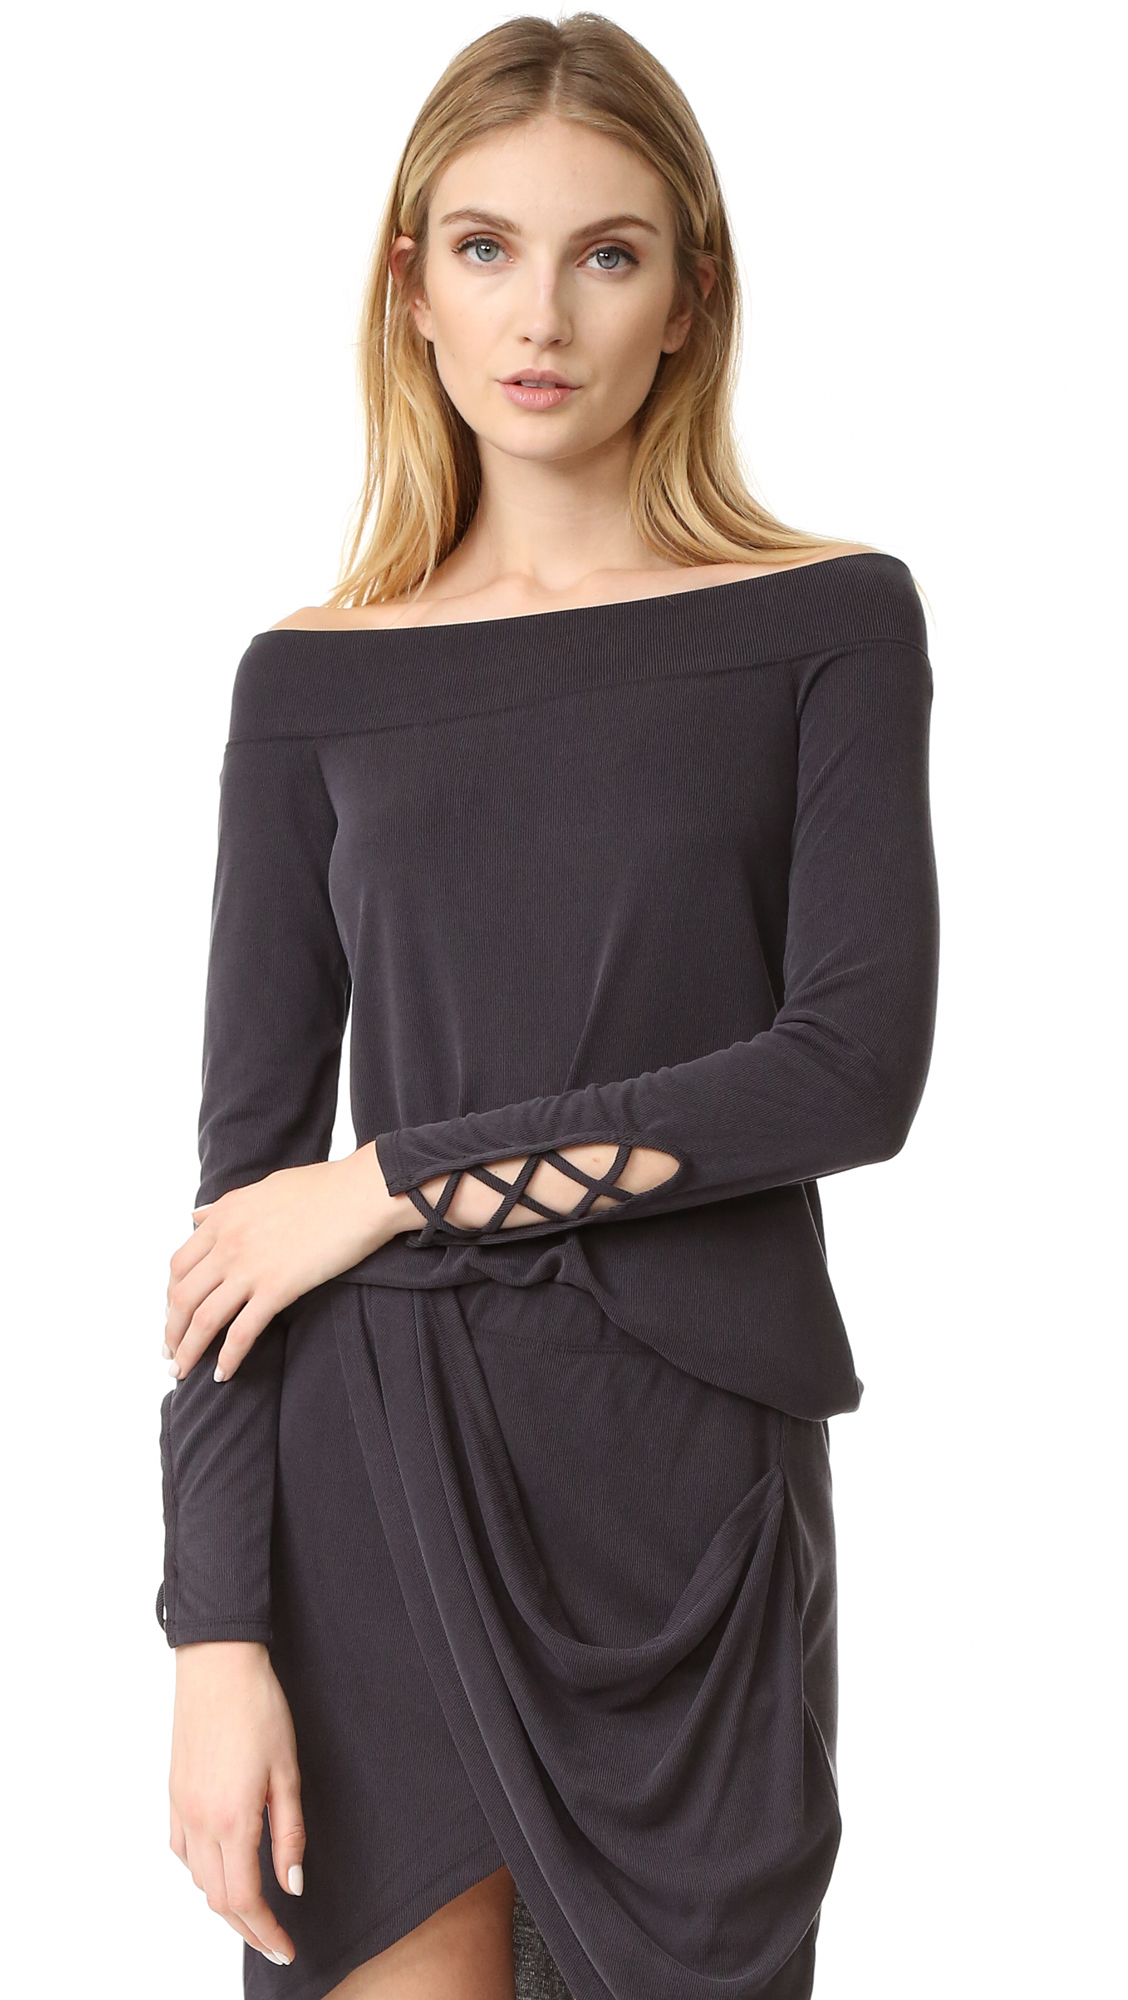 Splendid Off Shoulder Top - Black